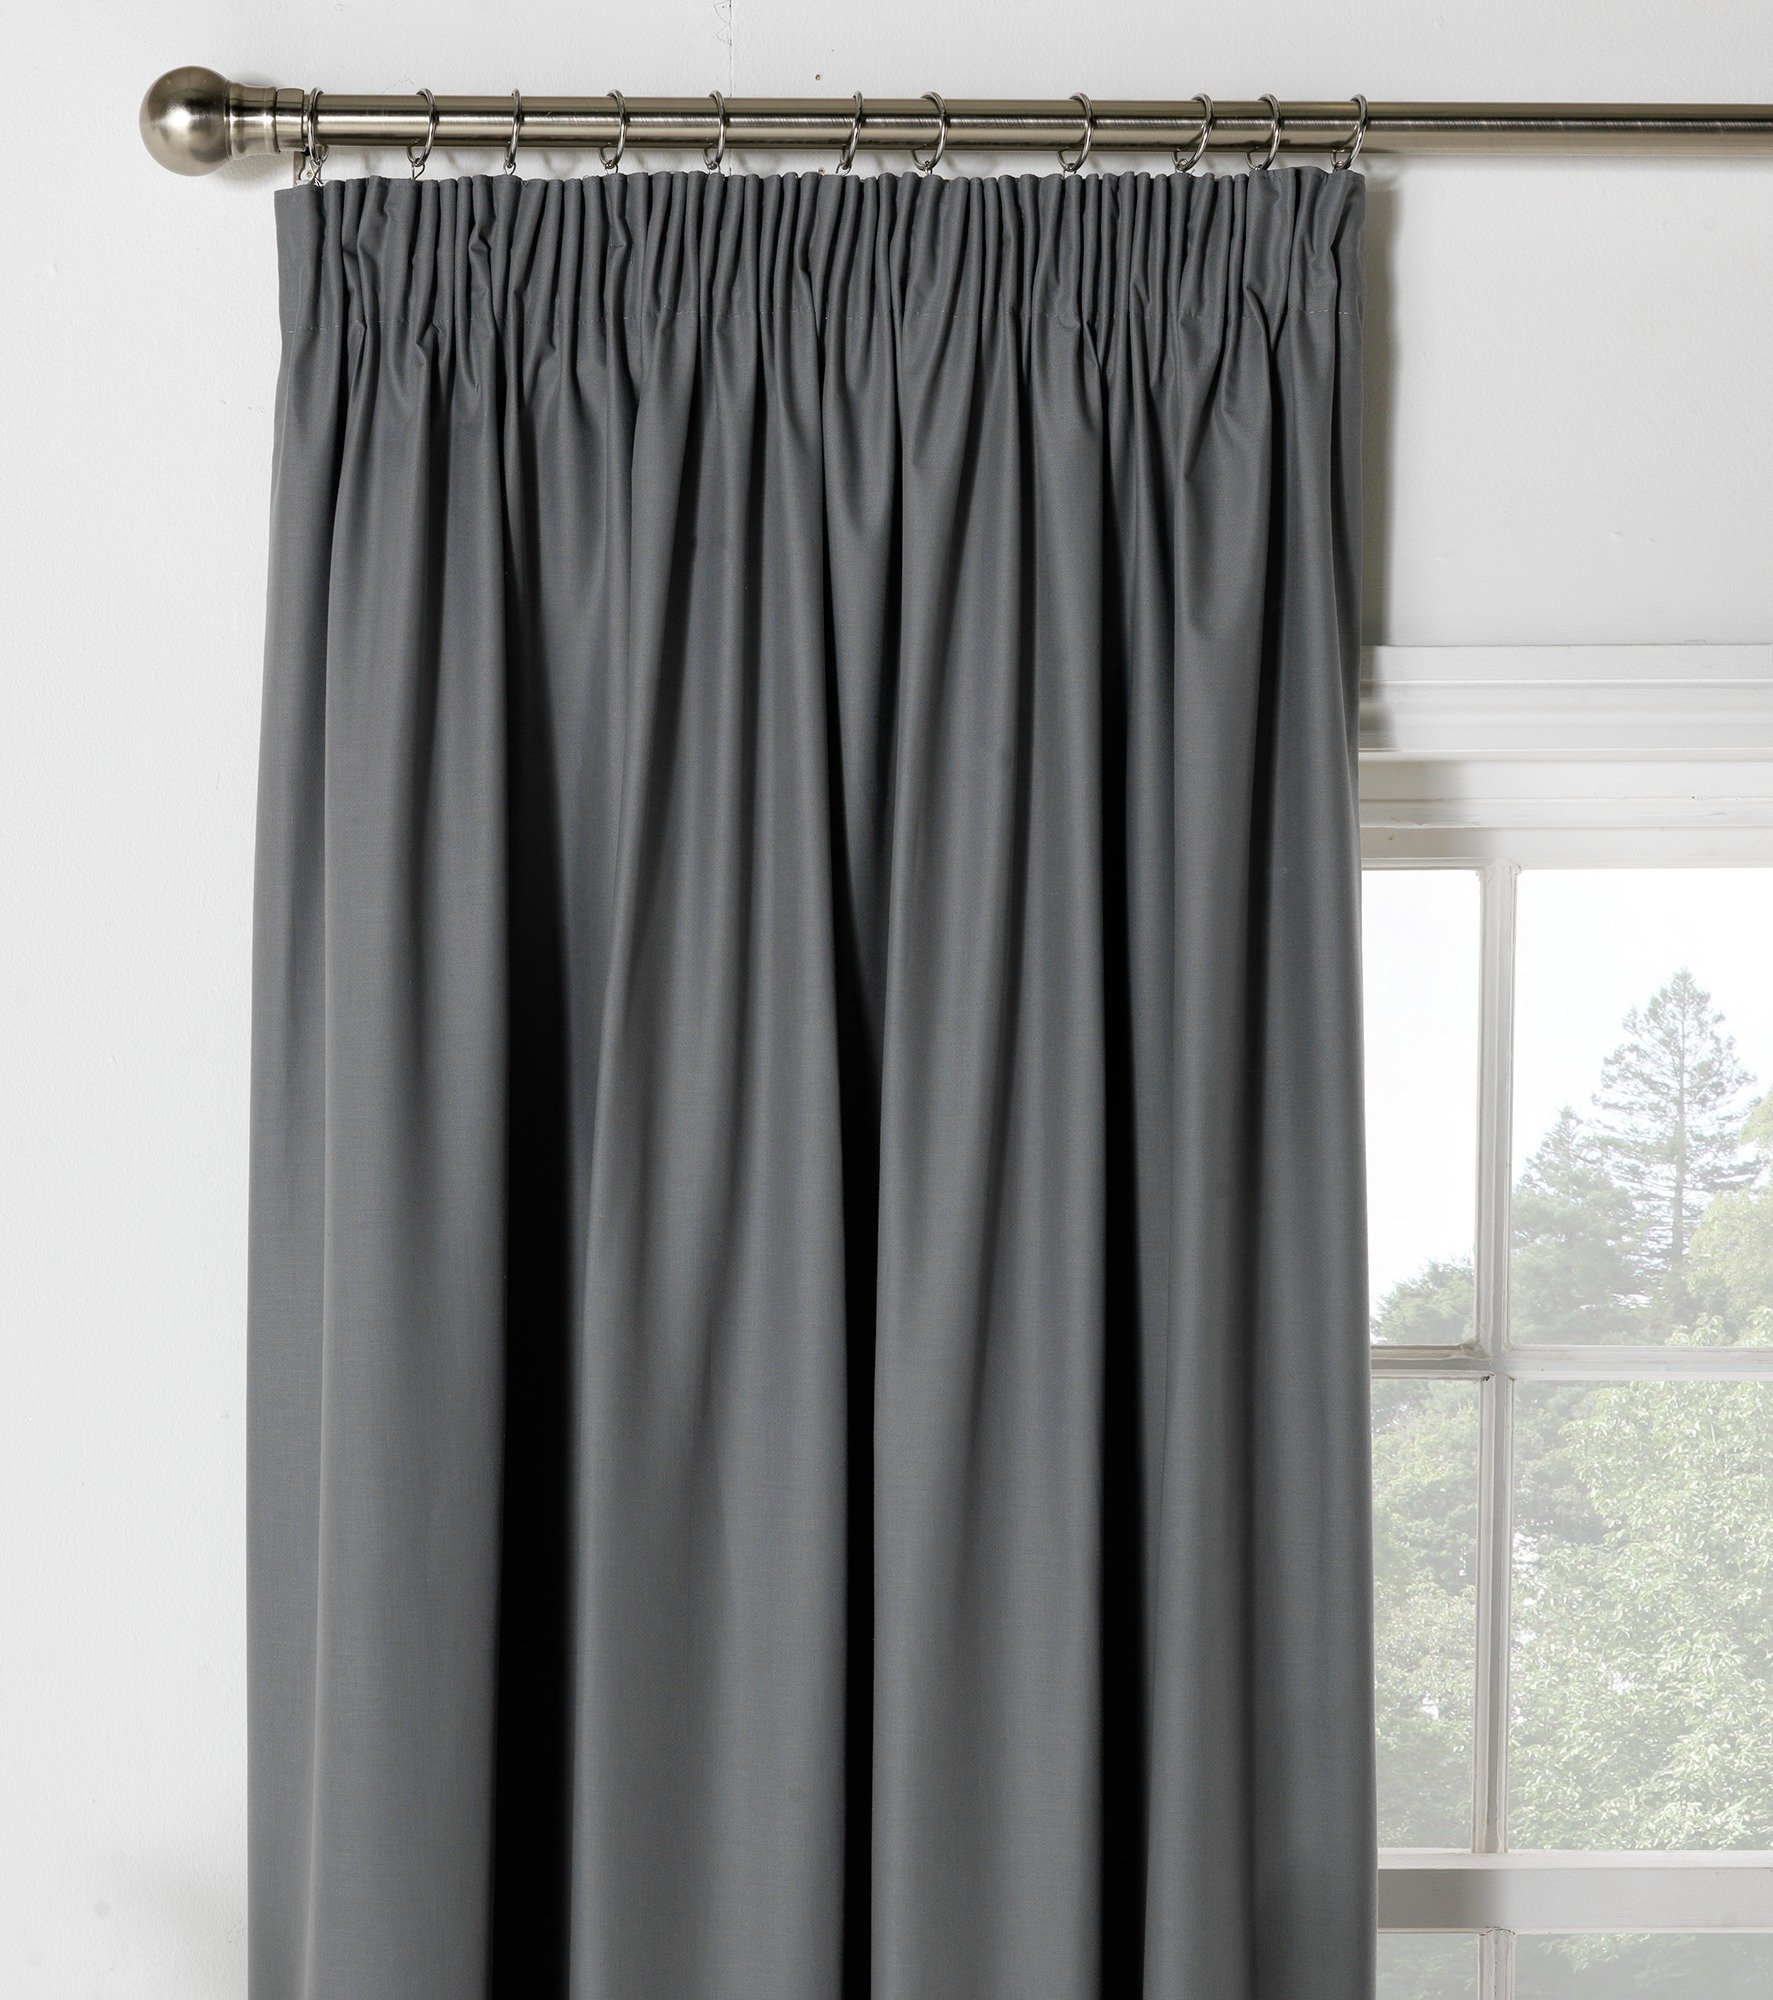 Exciting Bathroom Decor Ideas with Shower Curtain Tension Rod: Shower Curtain Tension Rod | Mounted Shower Curtain Rod | Extra Long Shower Curtain Rod Tension